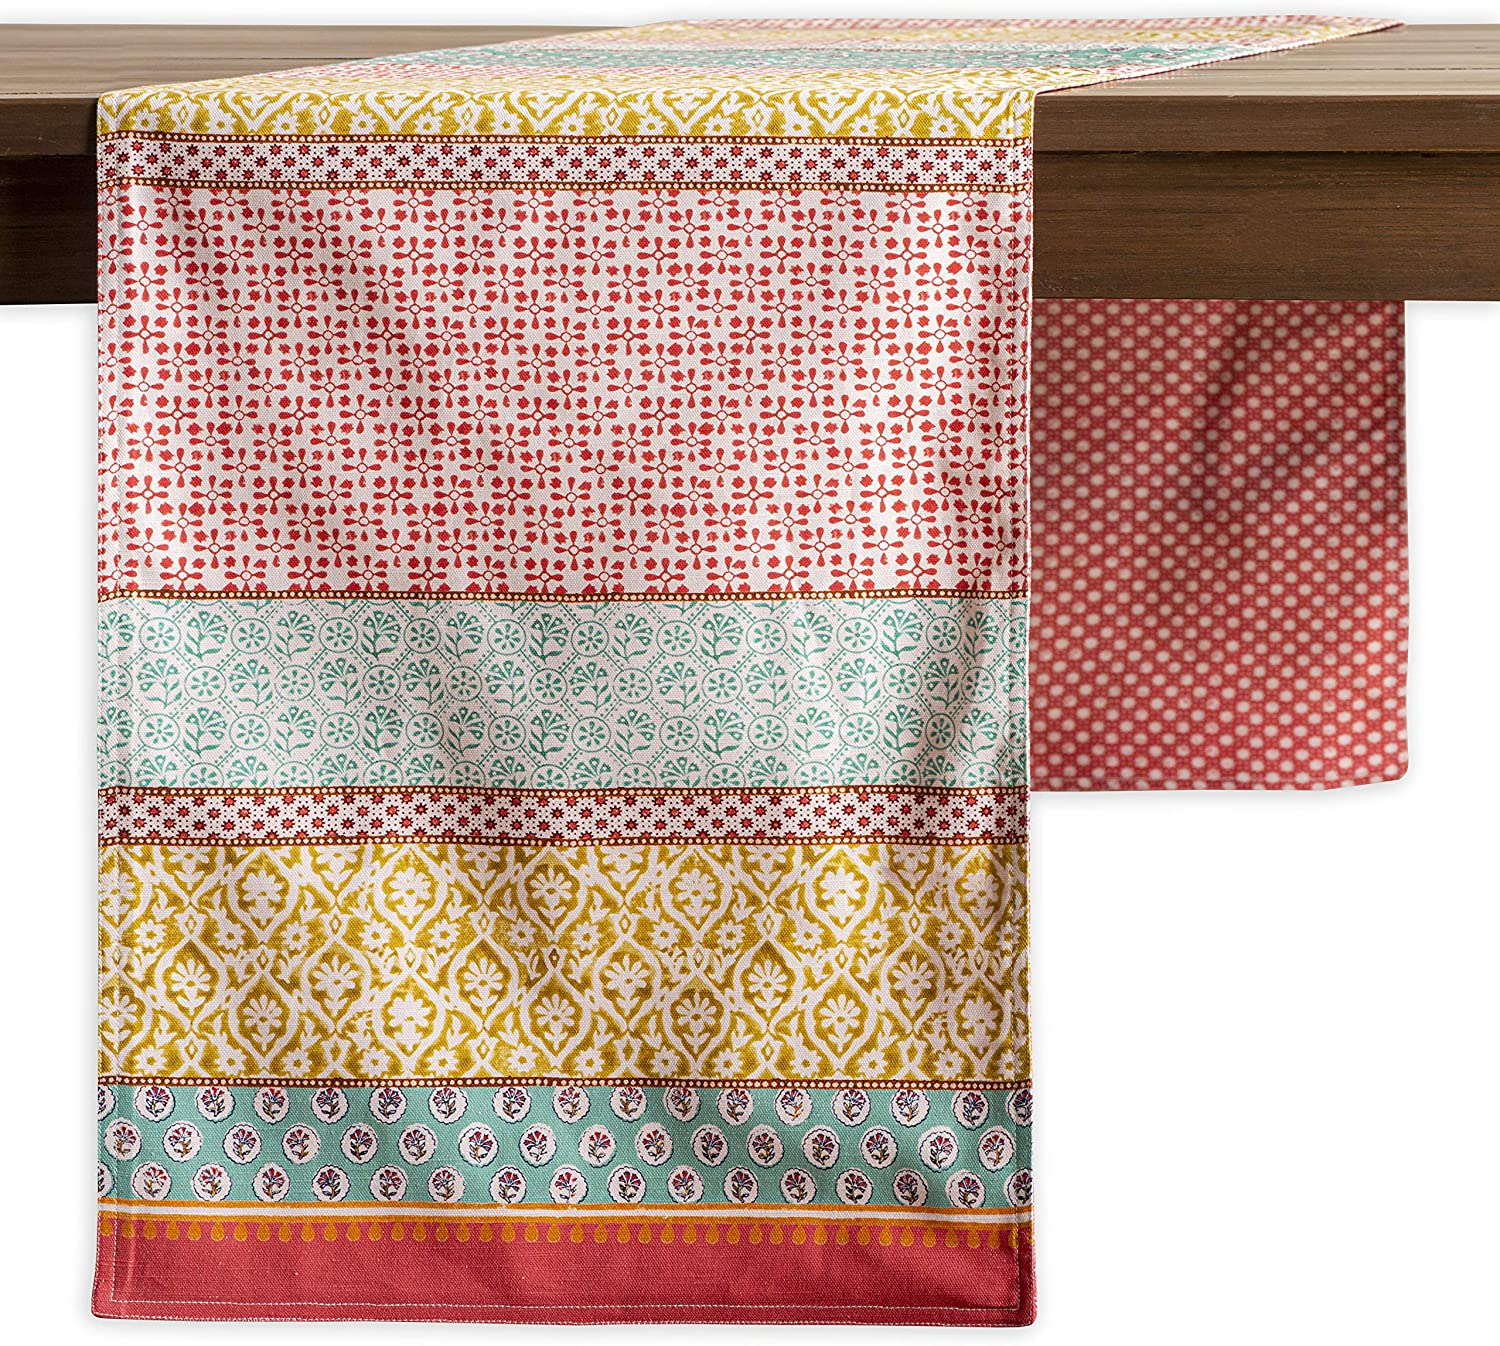 Maison d' Hermine Provence online shopping 100% Cotton Table Runner Party Popular standard for